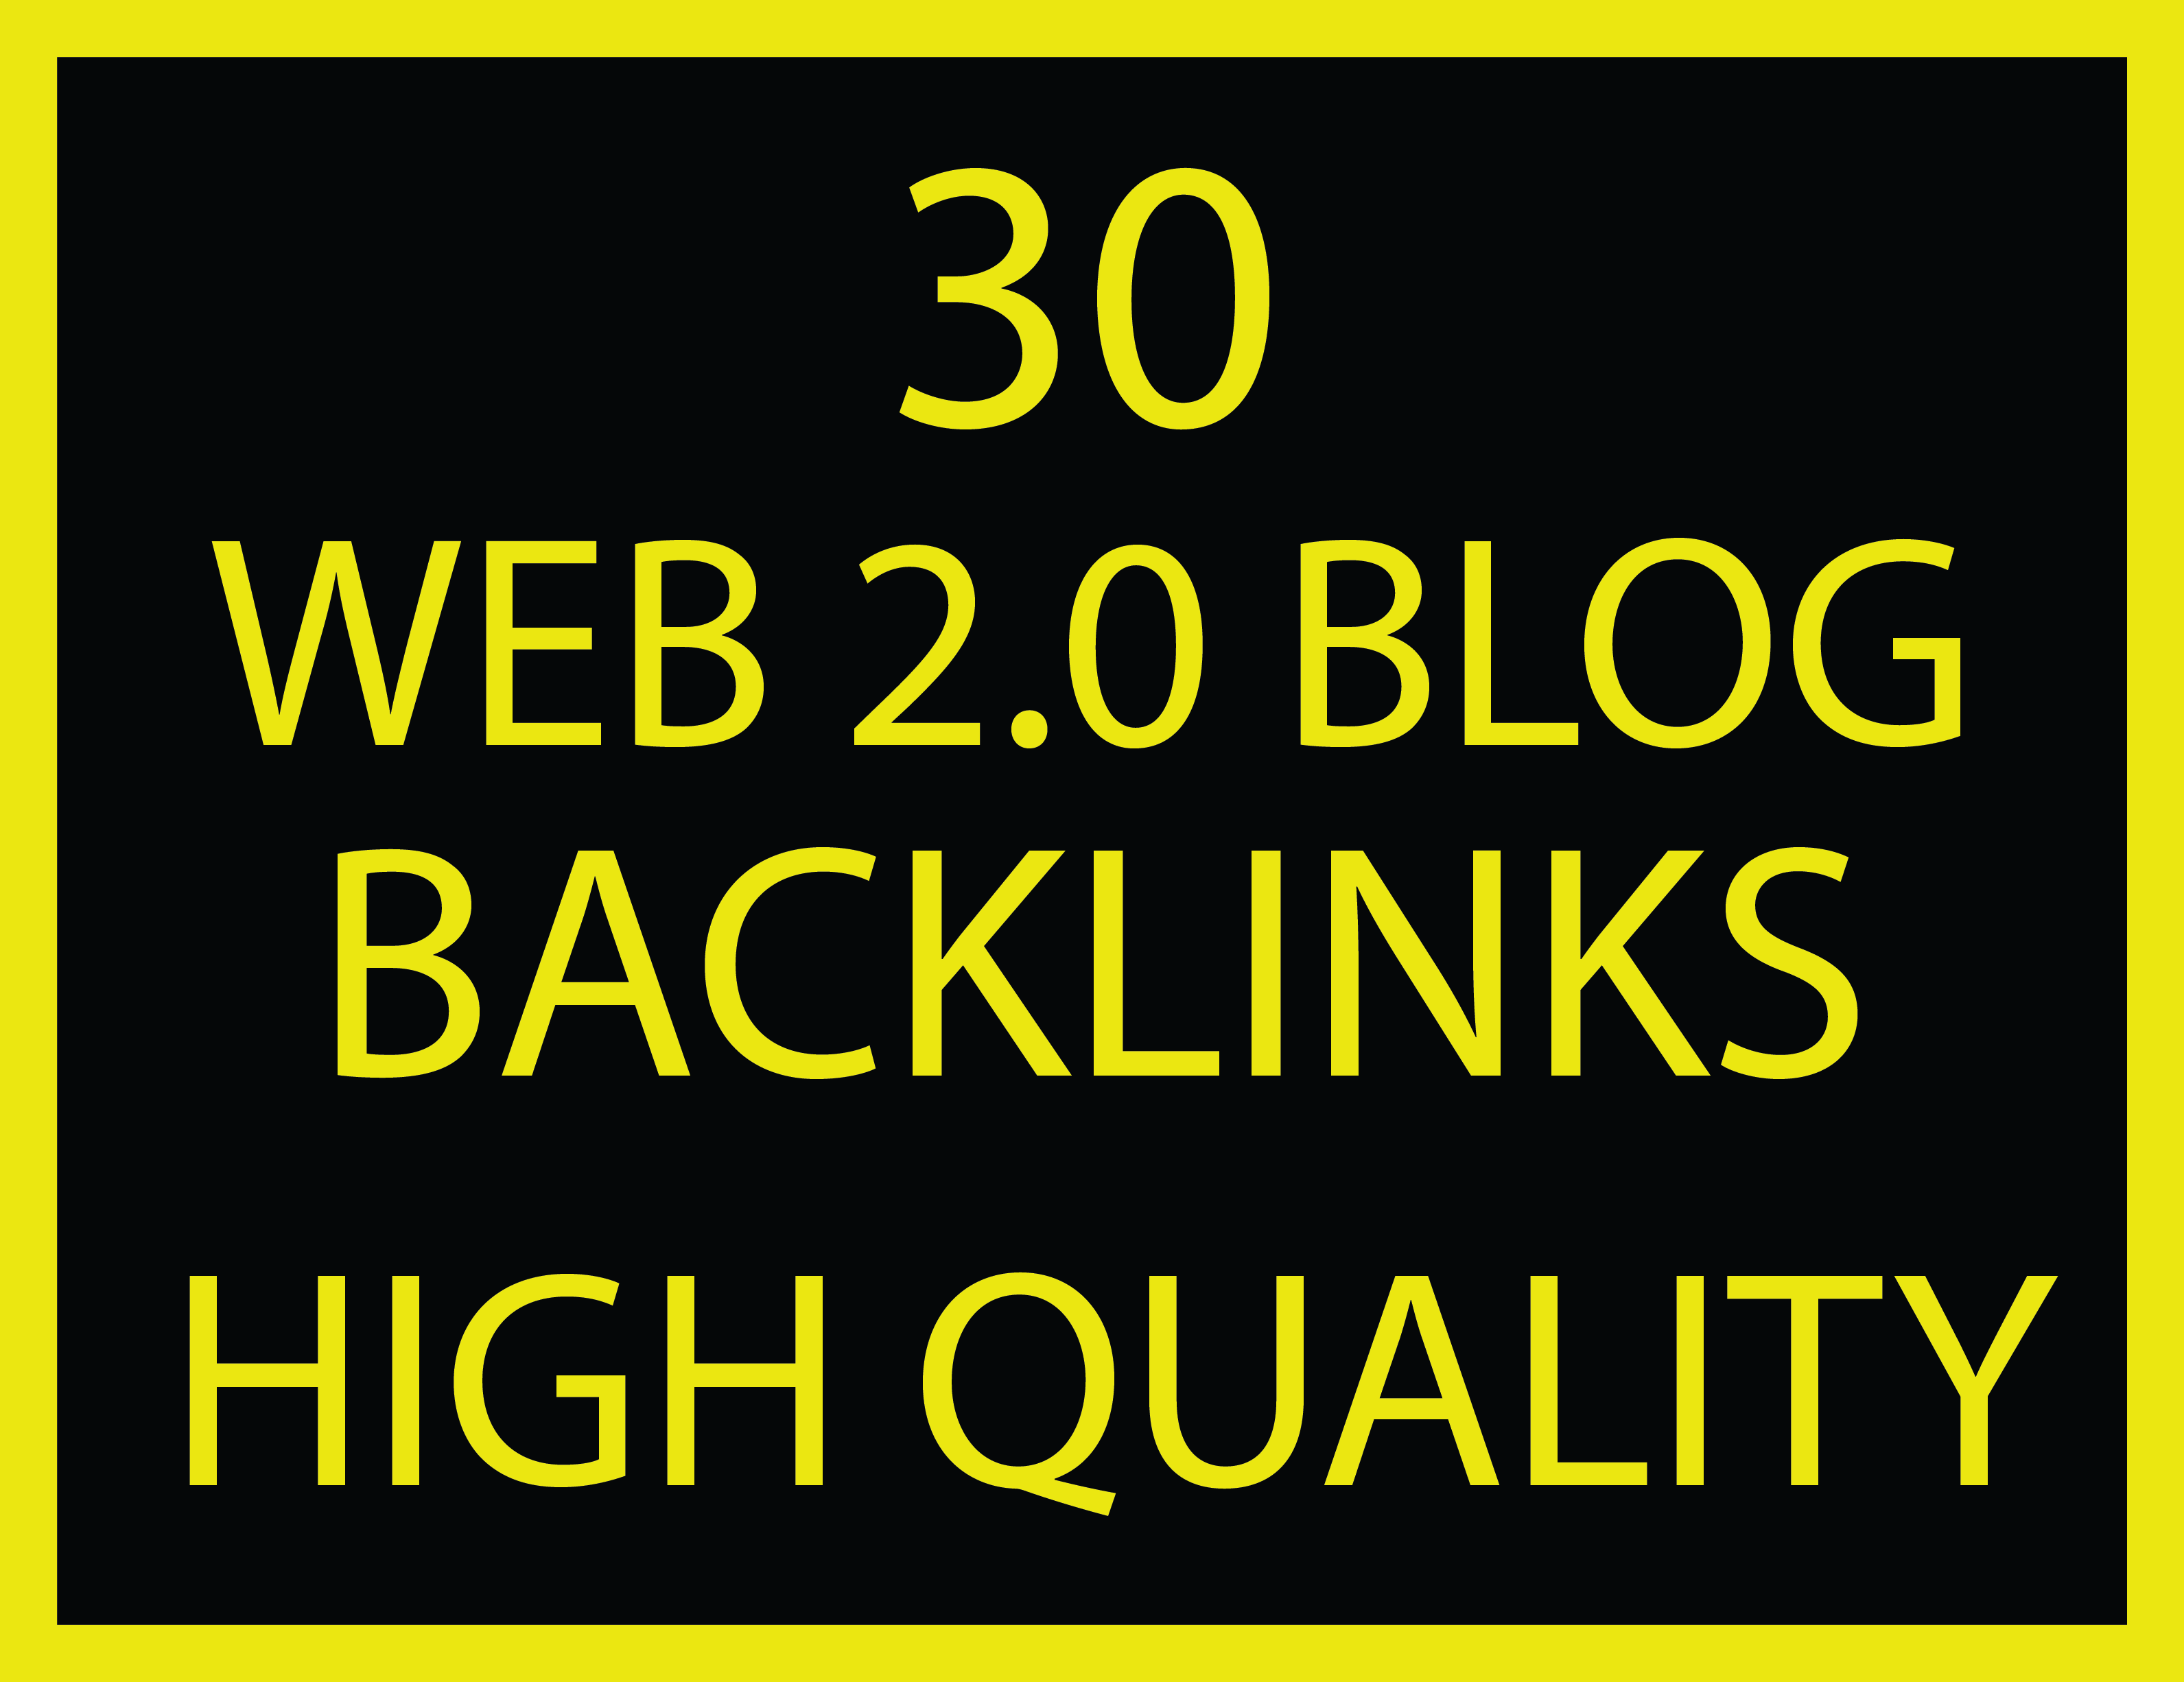 rank your blog with unique domain 30 web 2.0 backlinks high quality